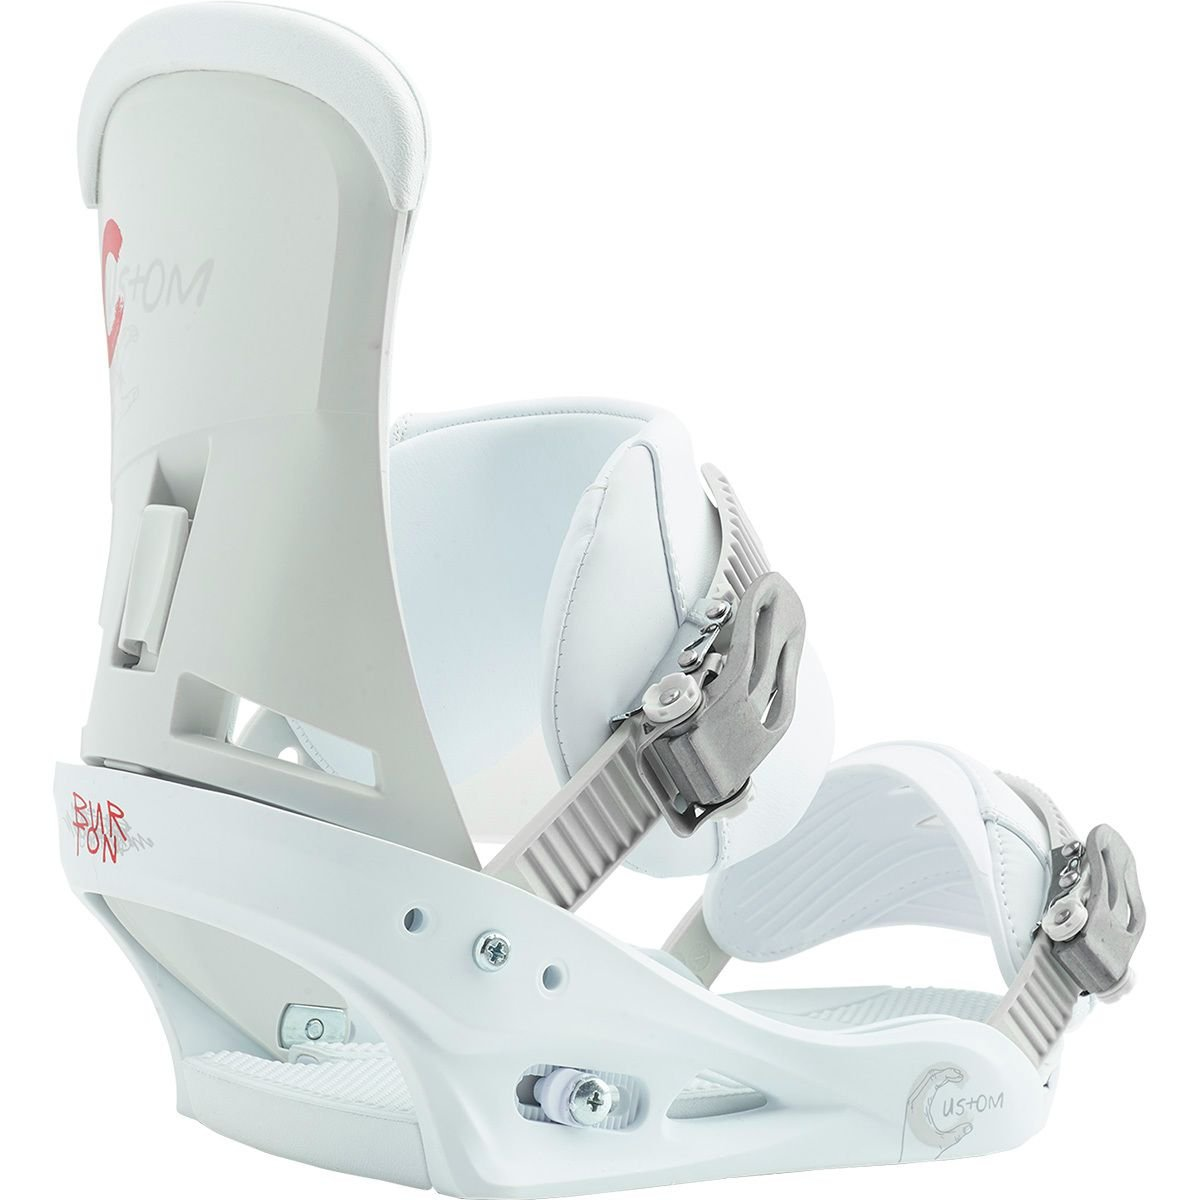 Burton Custom Snowboard Bindings White Sz M (8-11)